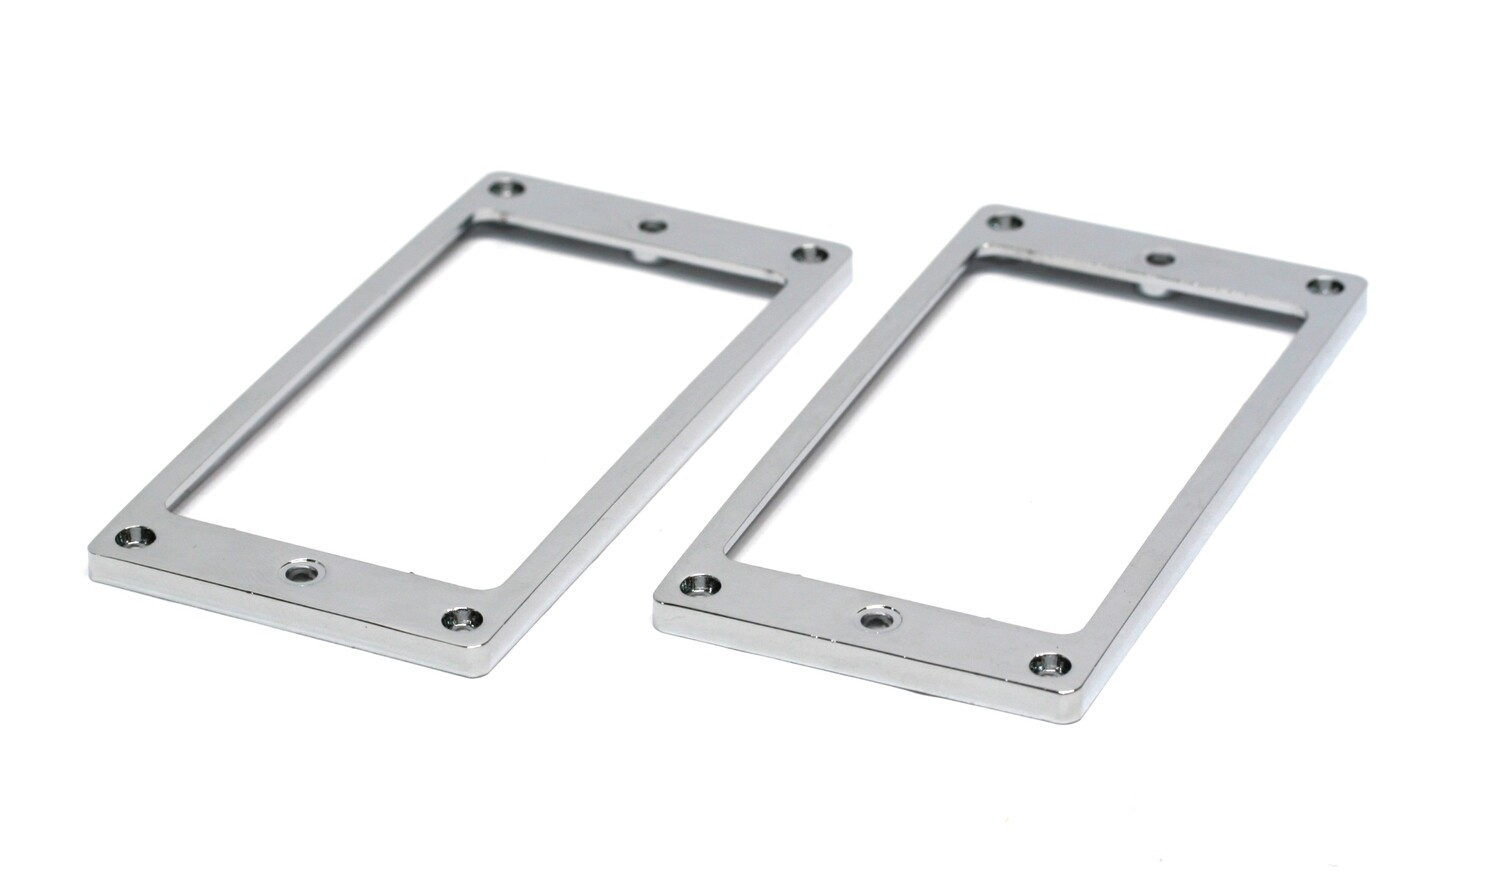 2 x Metal Humbucking Pickup Ring Set Chrome